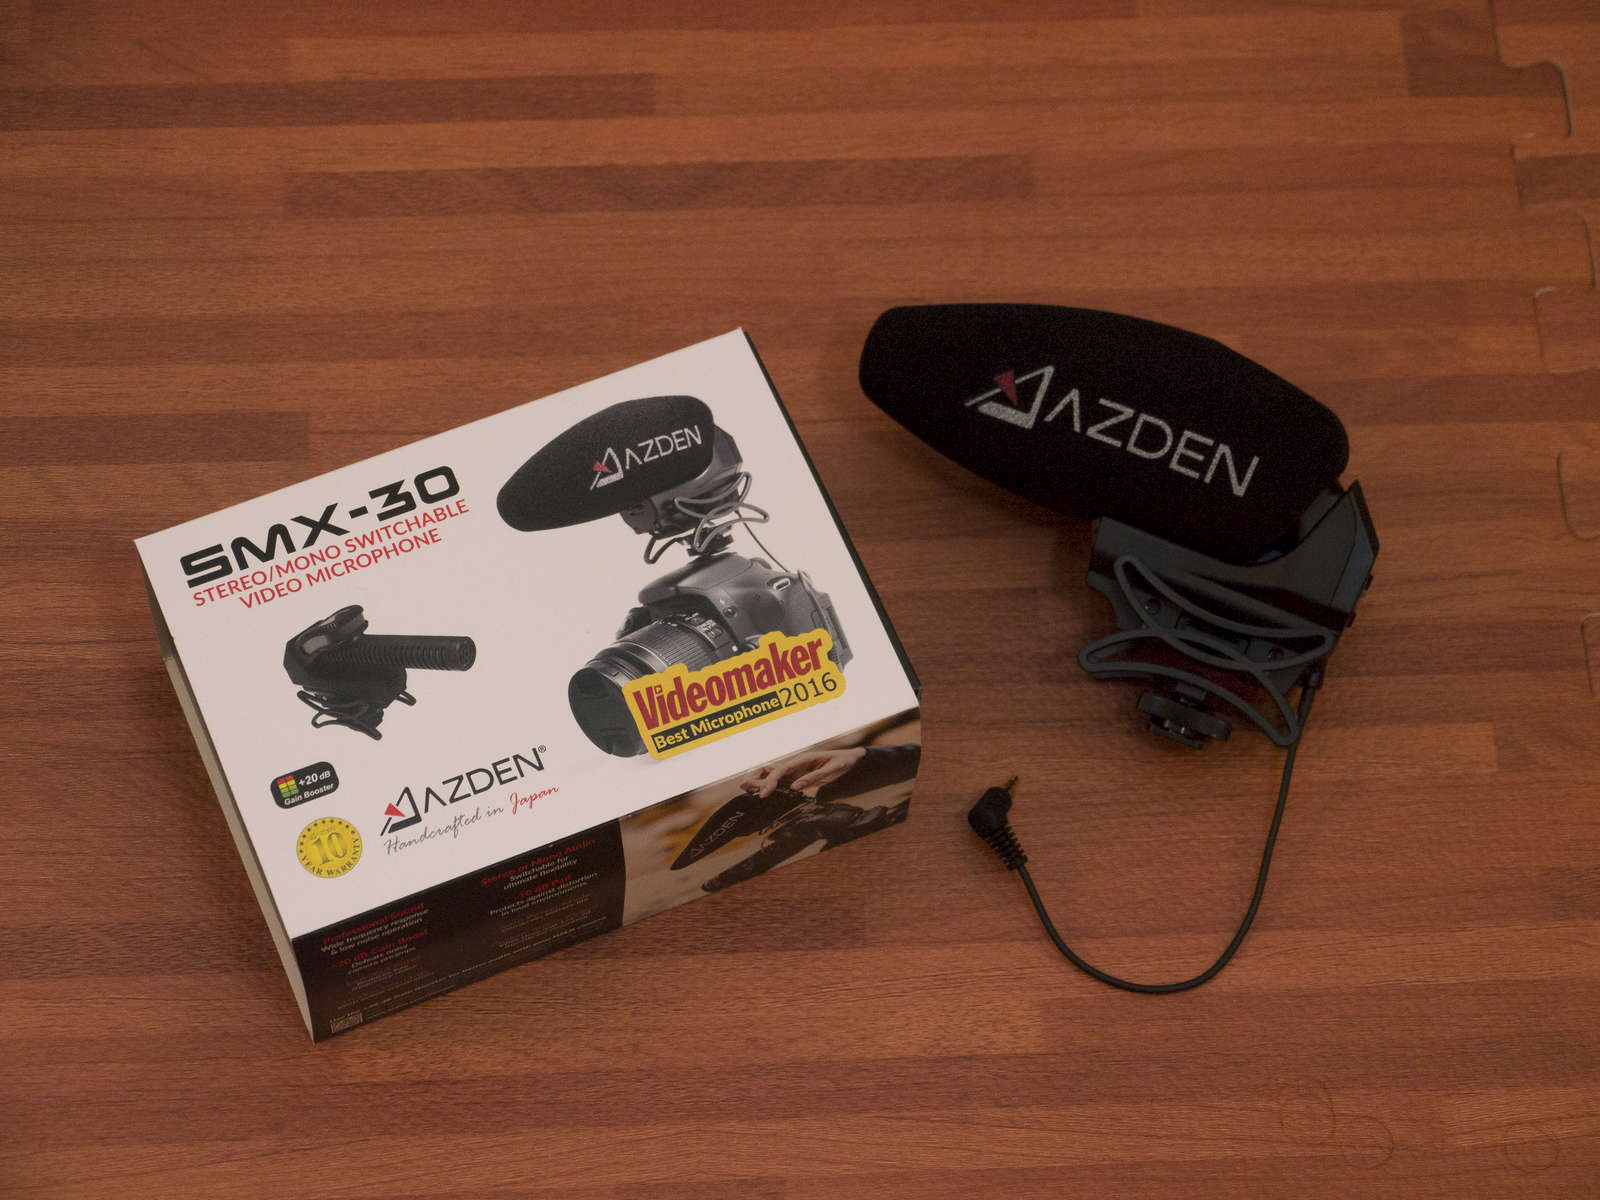 Azden SMX-30 Stereo/Mono Video Microphone